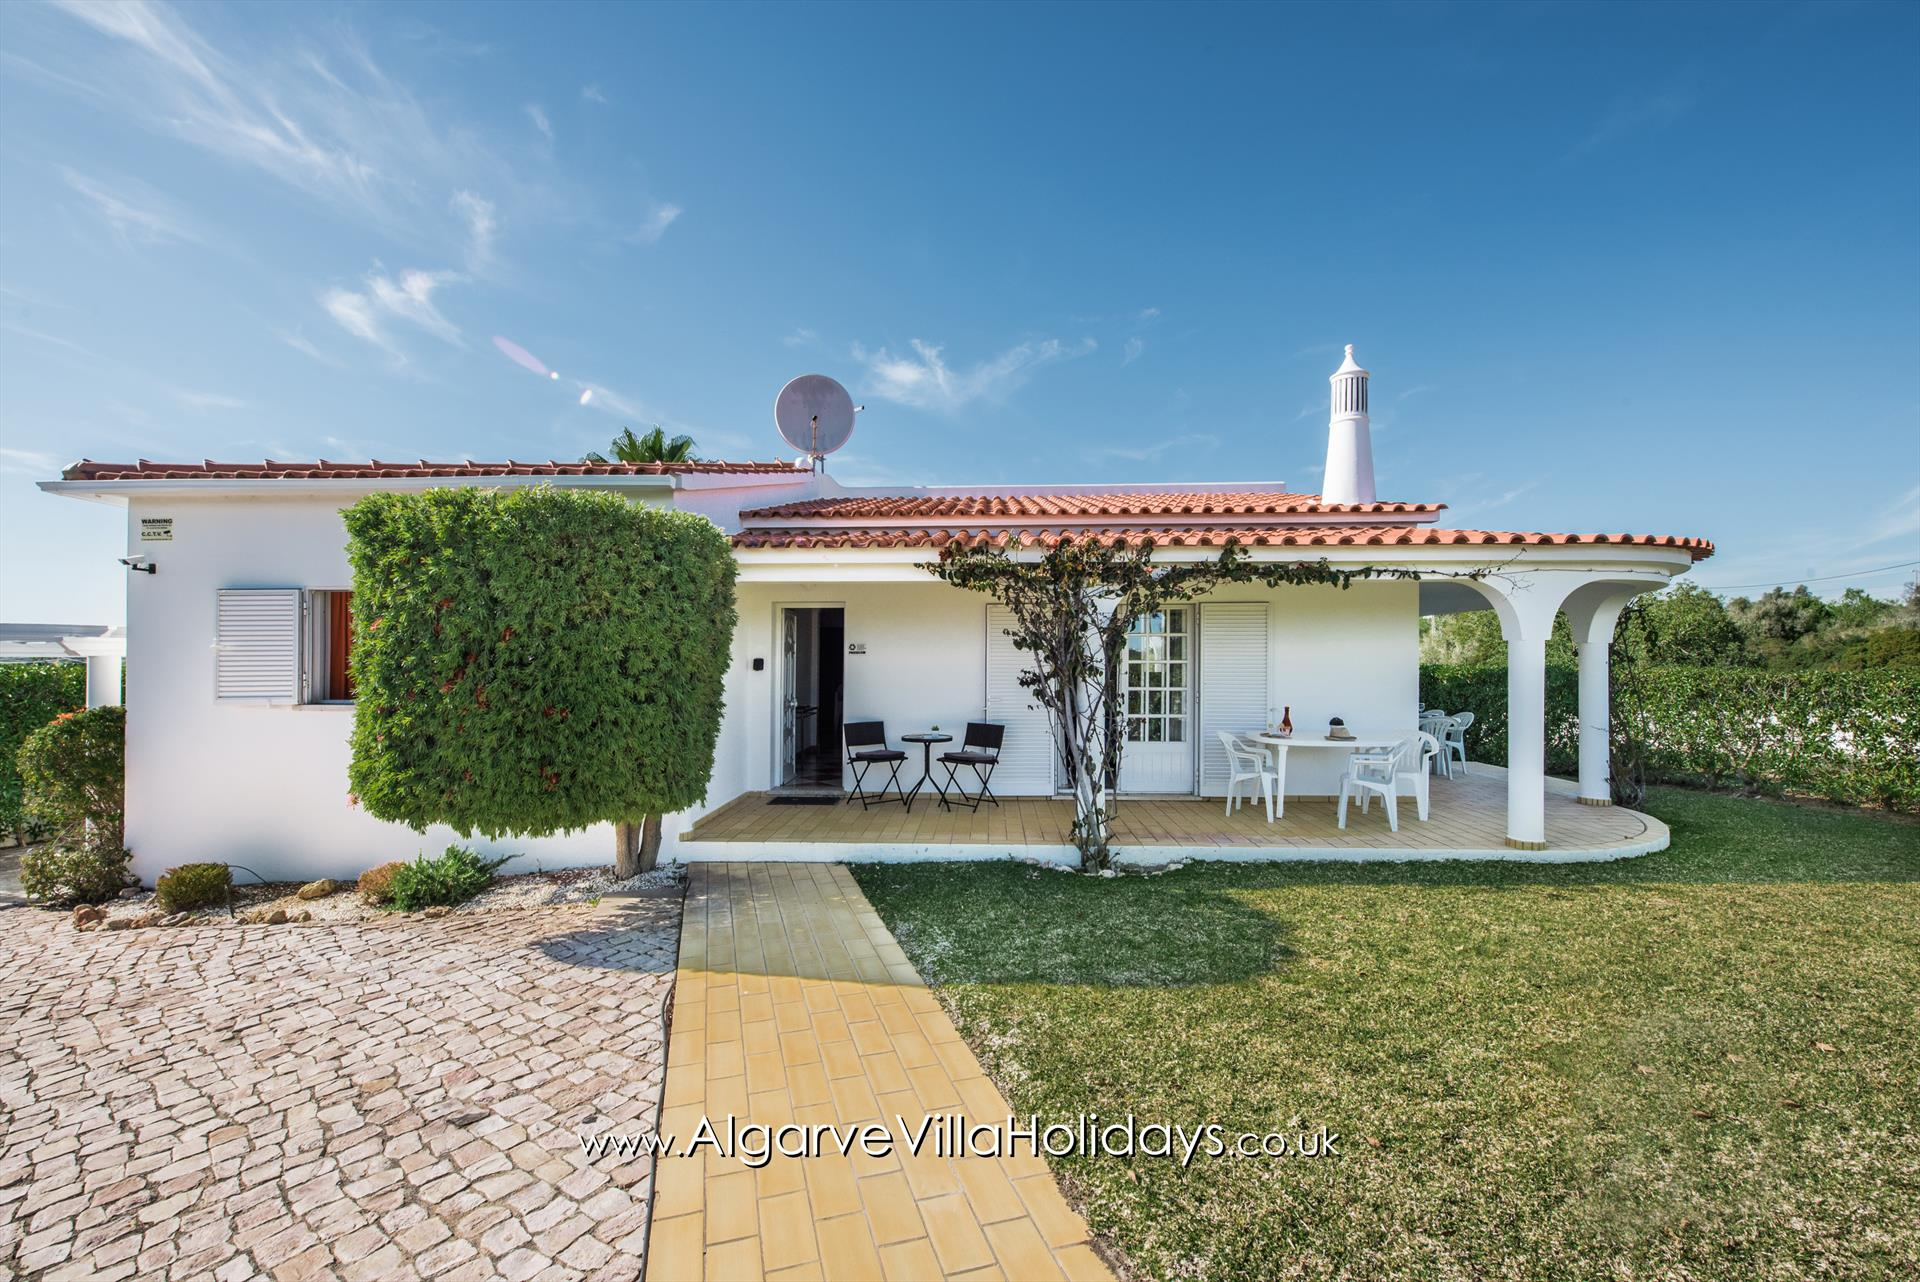 Barrancos, Lovely and classic villa in Guia, on the Algarve, Portugal with private pool for 6 persons. The villa is situated in a rural.....